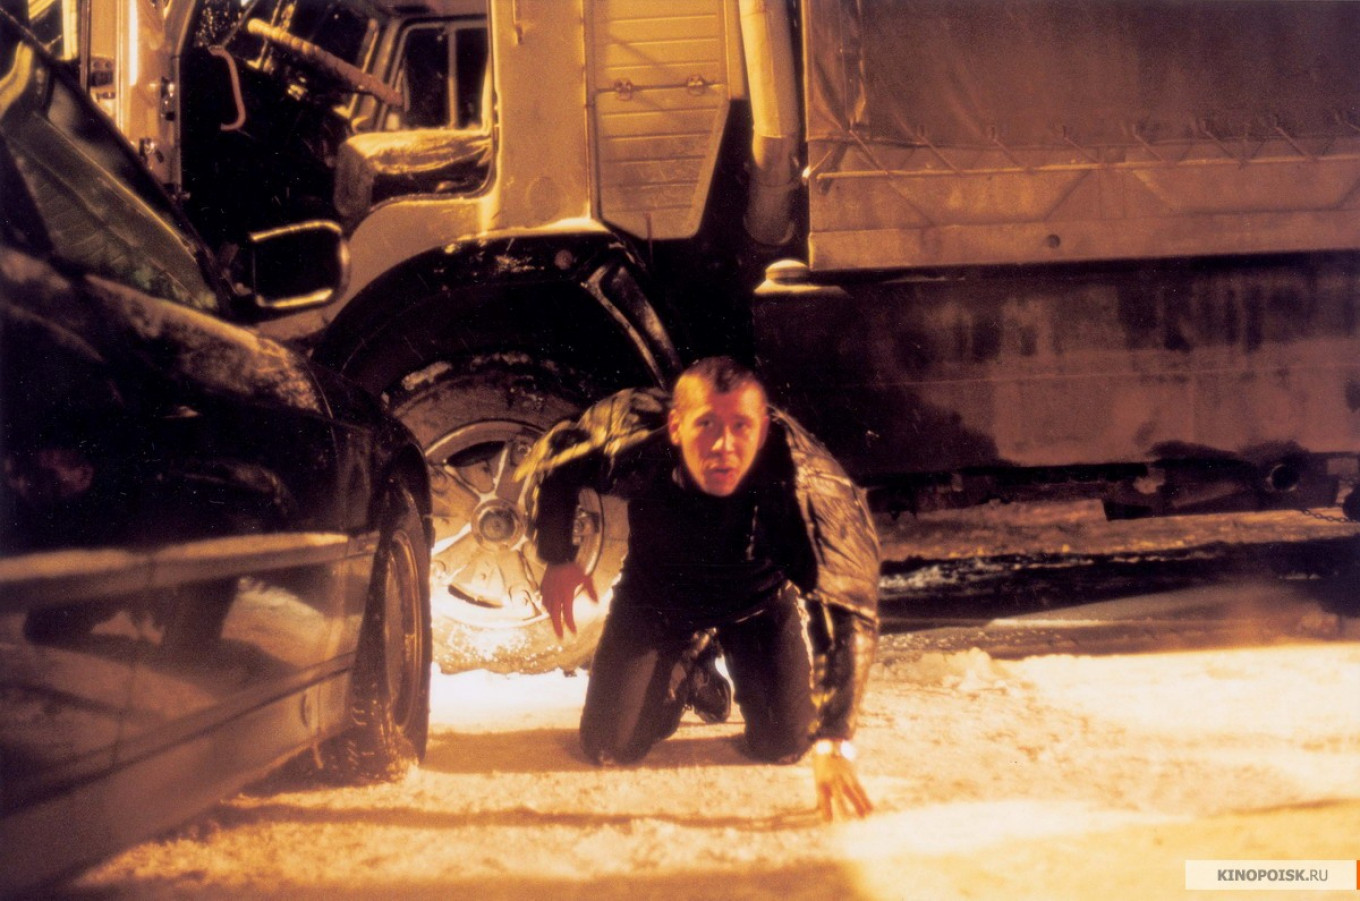 A white-knuckle ride awaits viewers on Tuesday in the 2003 cars-and-guns movie 'Bimmer.'  KINOPOISK.RU